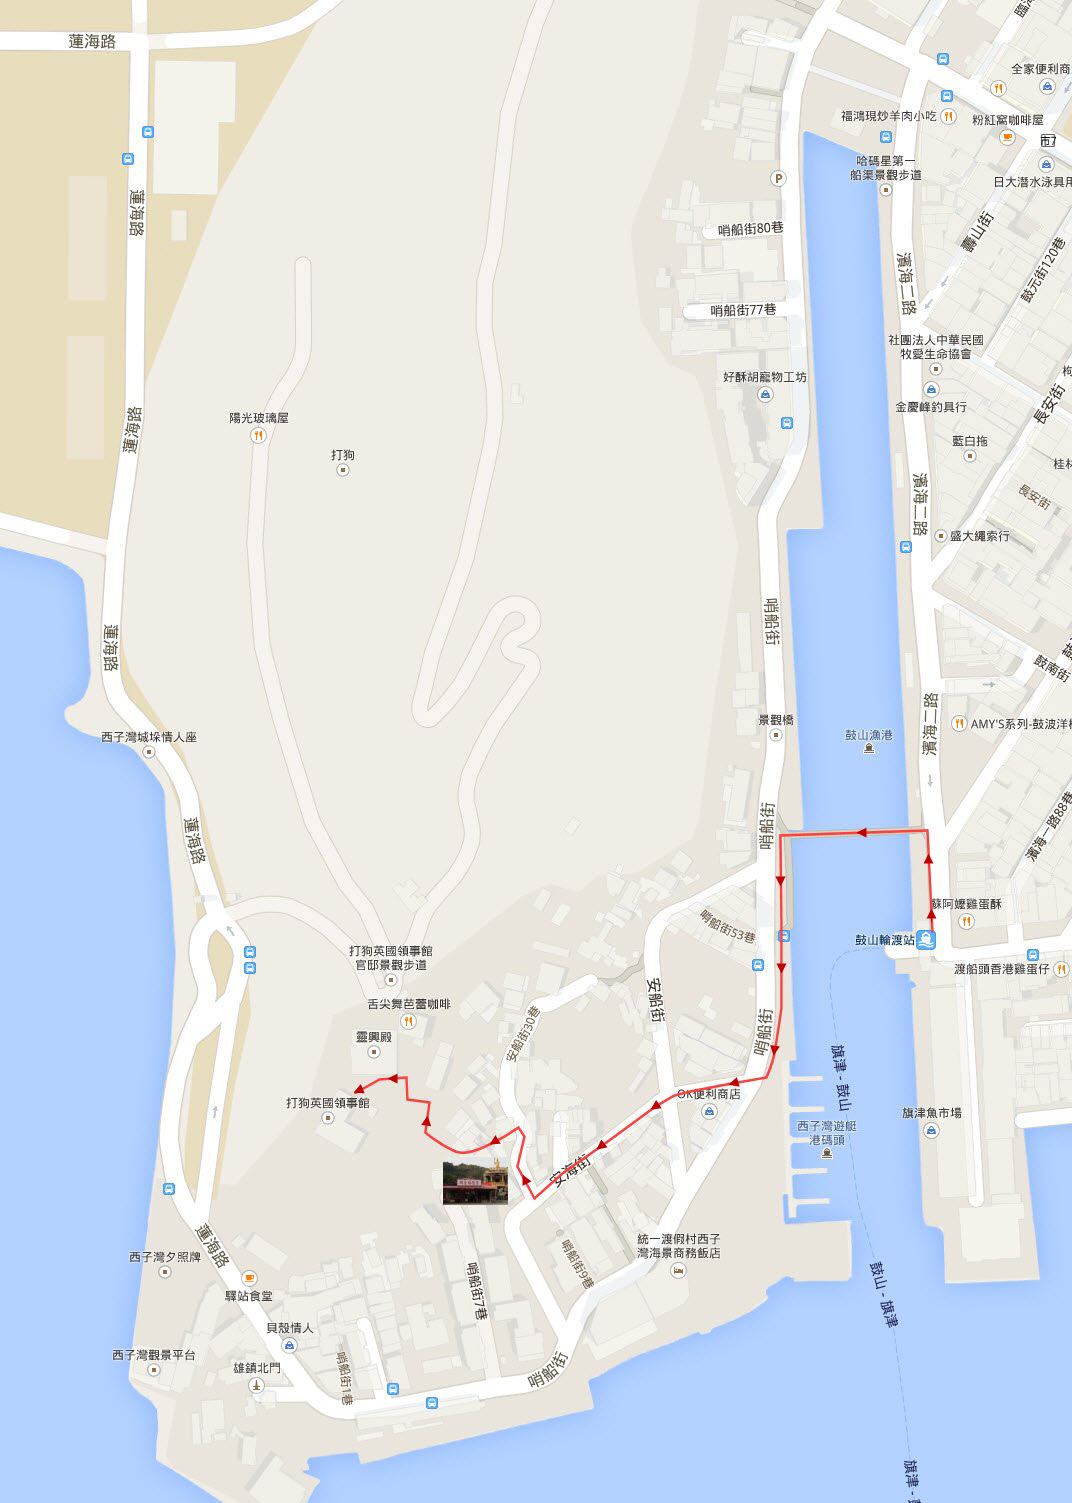 kaohsiung-sizihwan-ferry-station-walk-to-takao-former-british-consulate-map